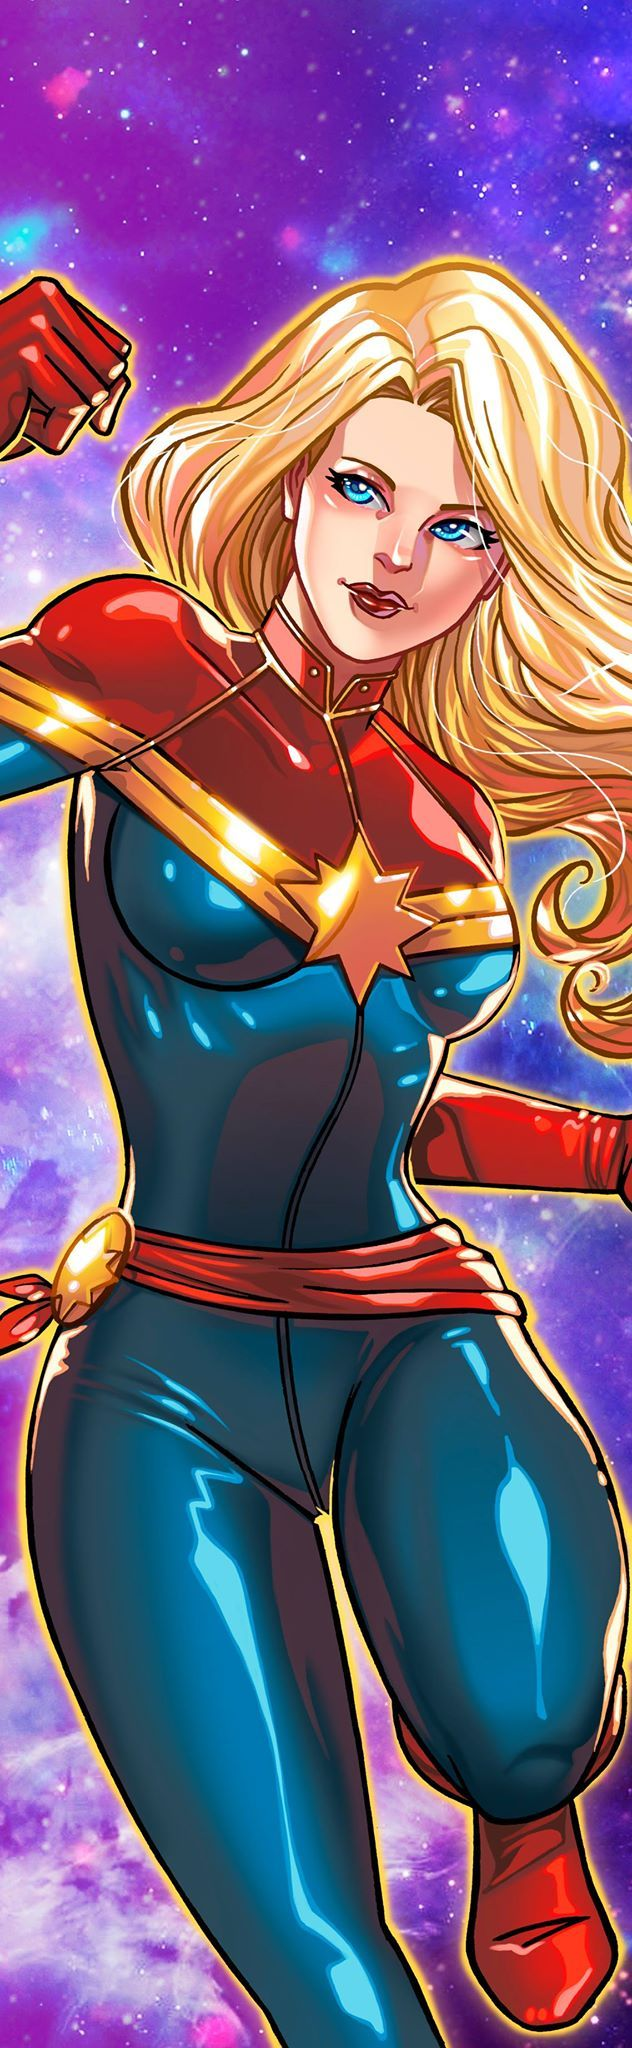 Captain Marvel Panel Art 2 by RichBernatovech.deviantart.com on @DeviantArt